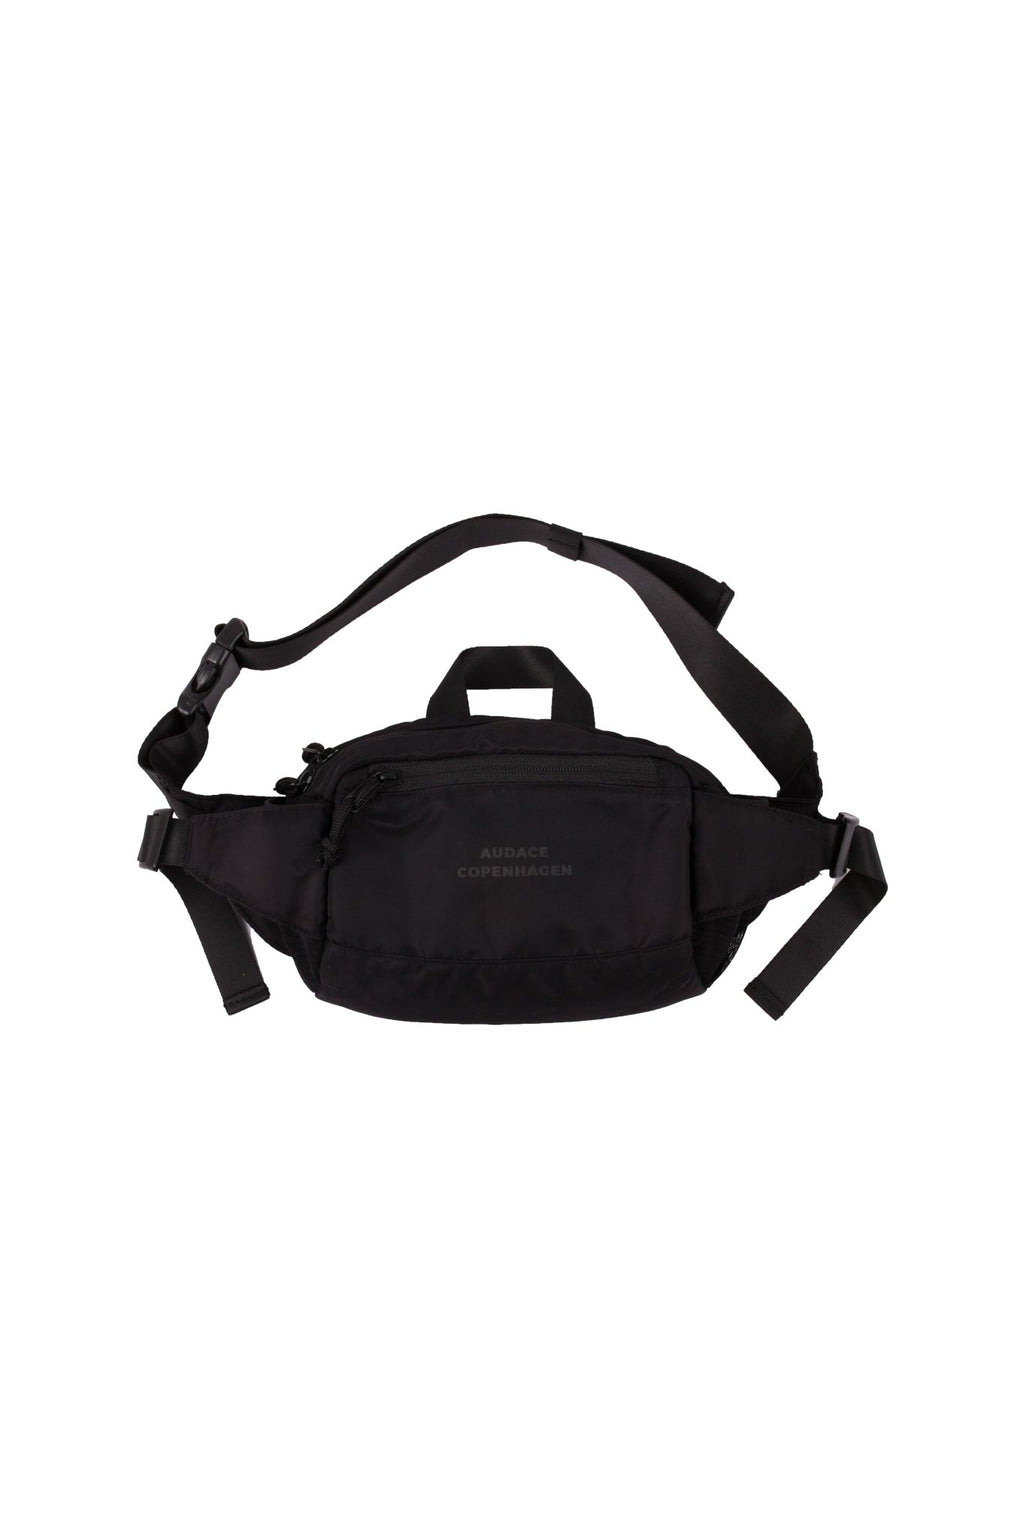 Black Carnival - Waistbag - Black on Black